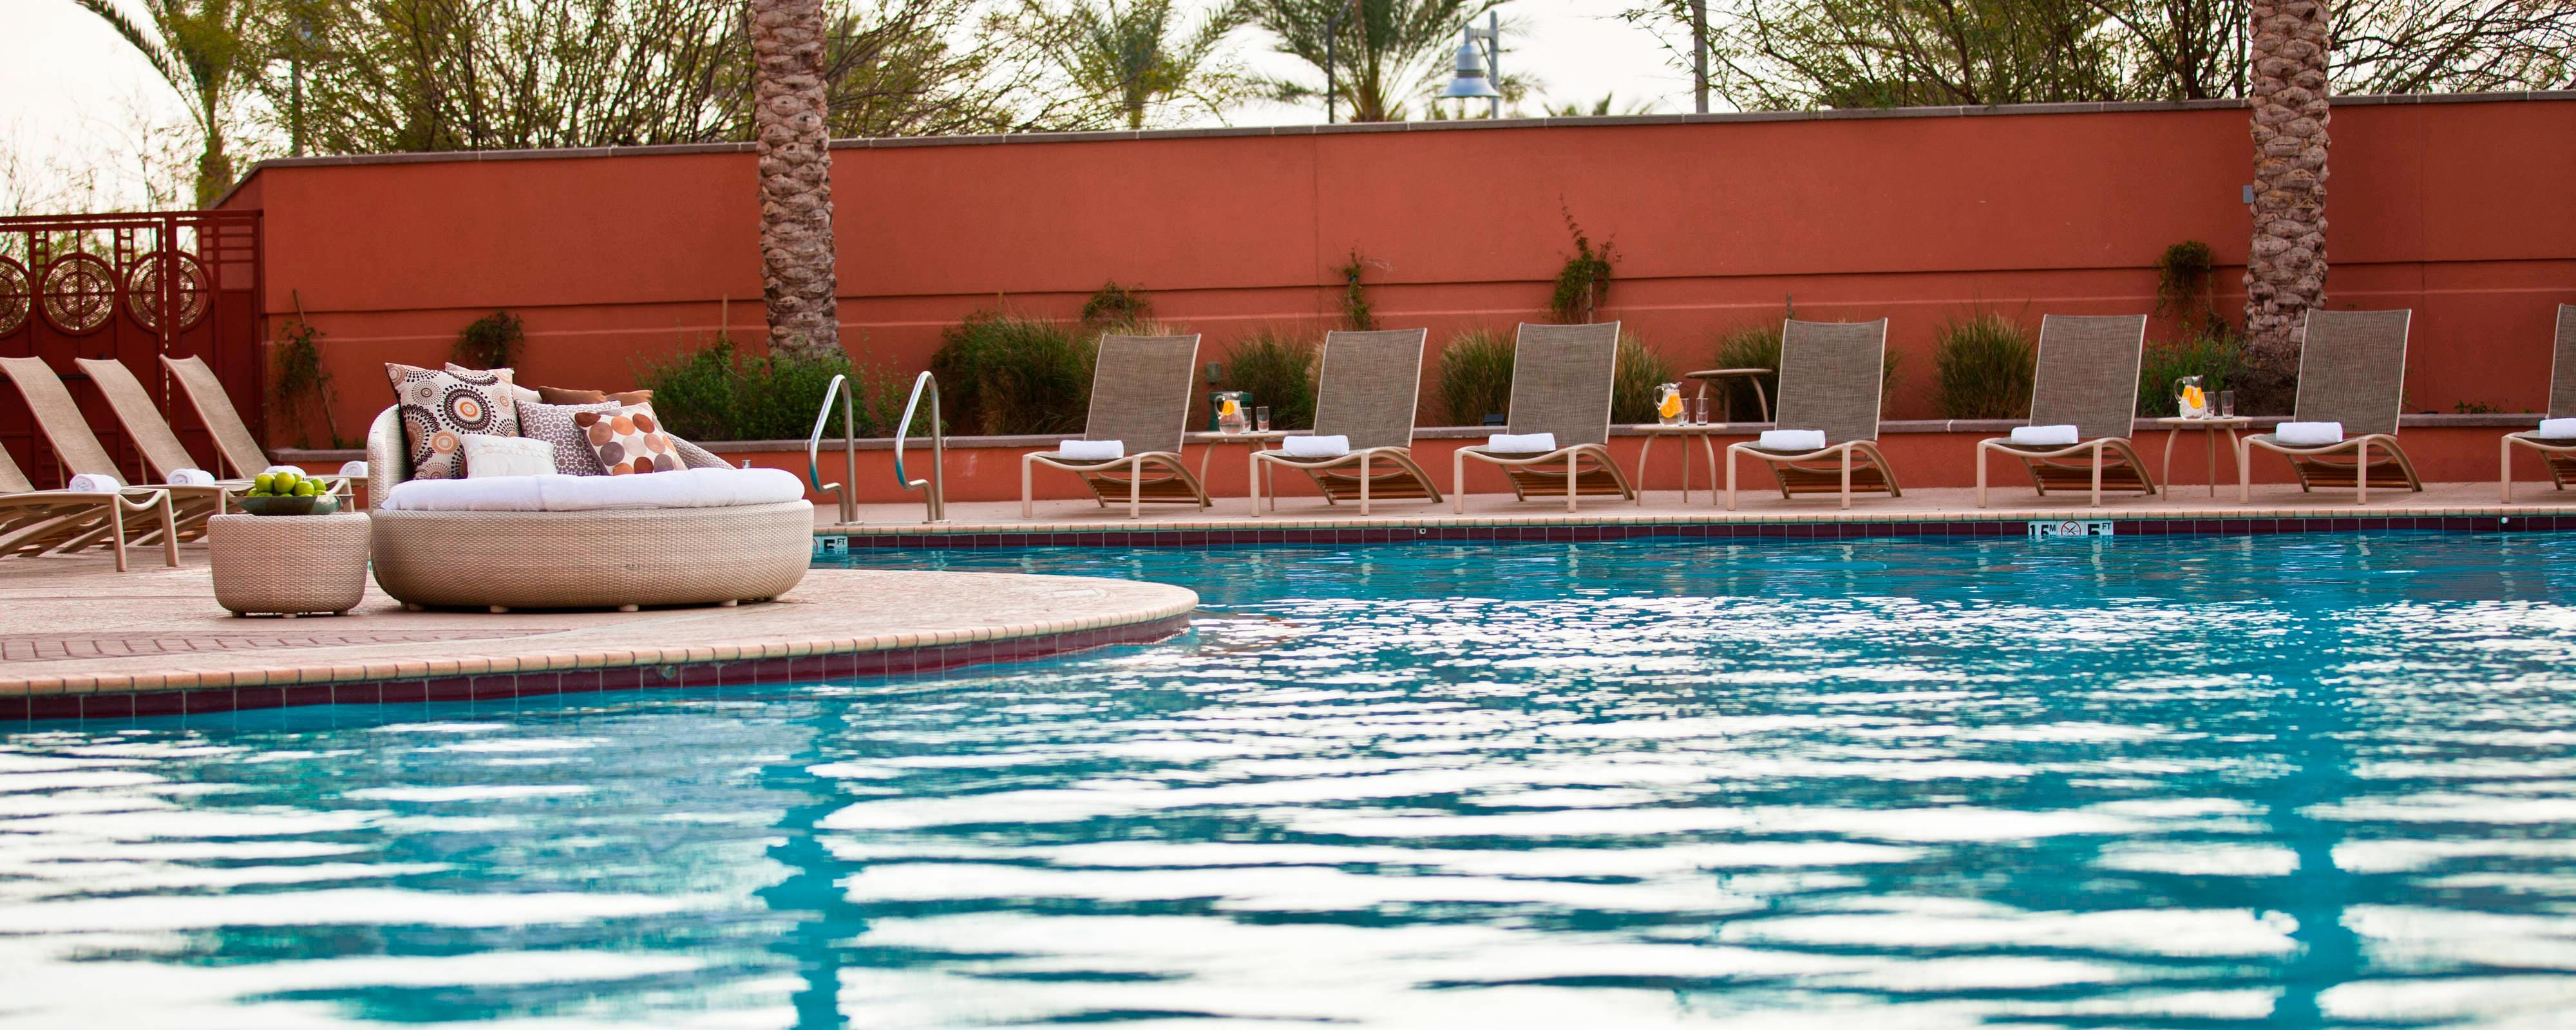 Number Of Hotel Rooms In Glendale Az